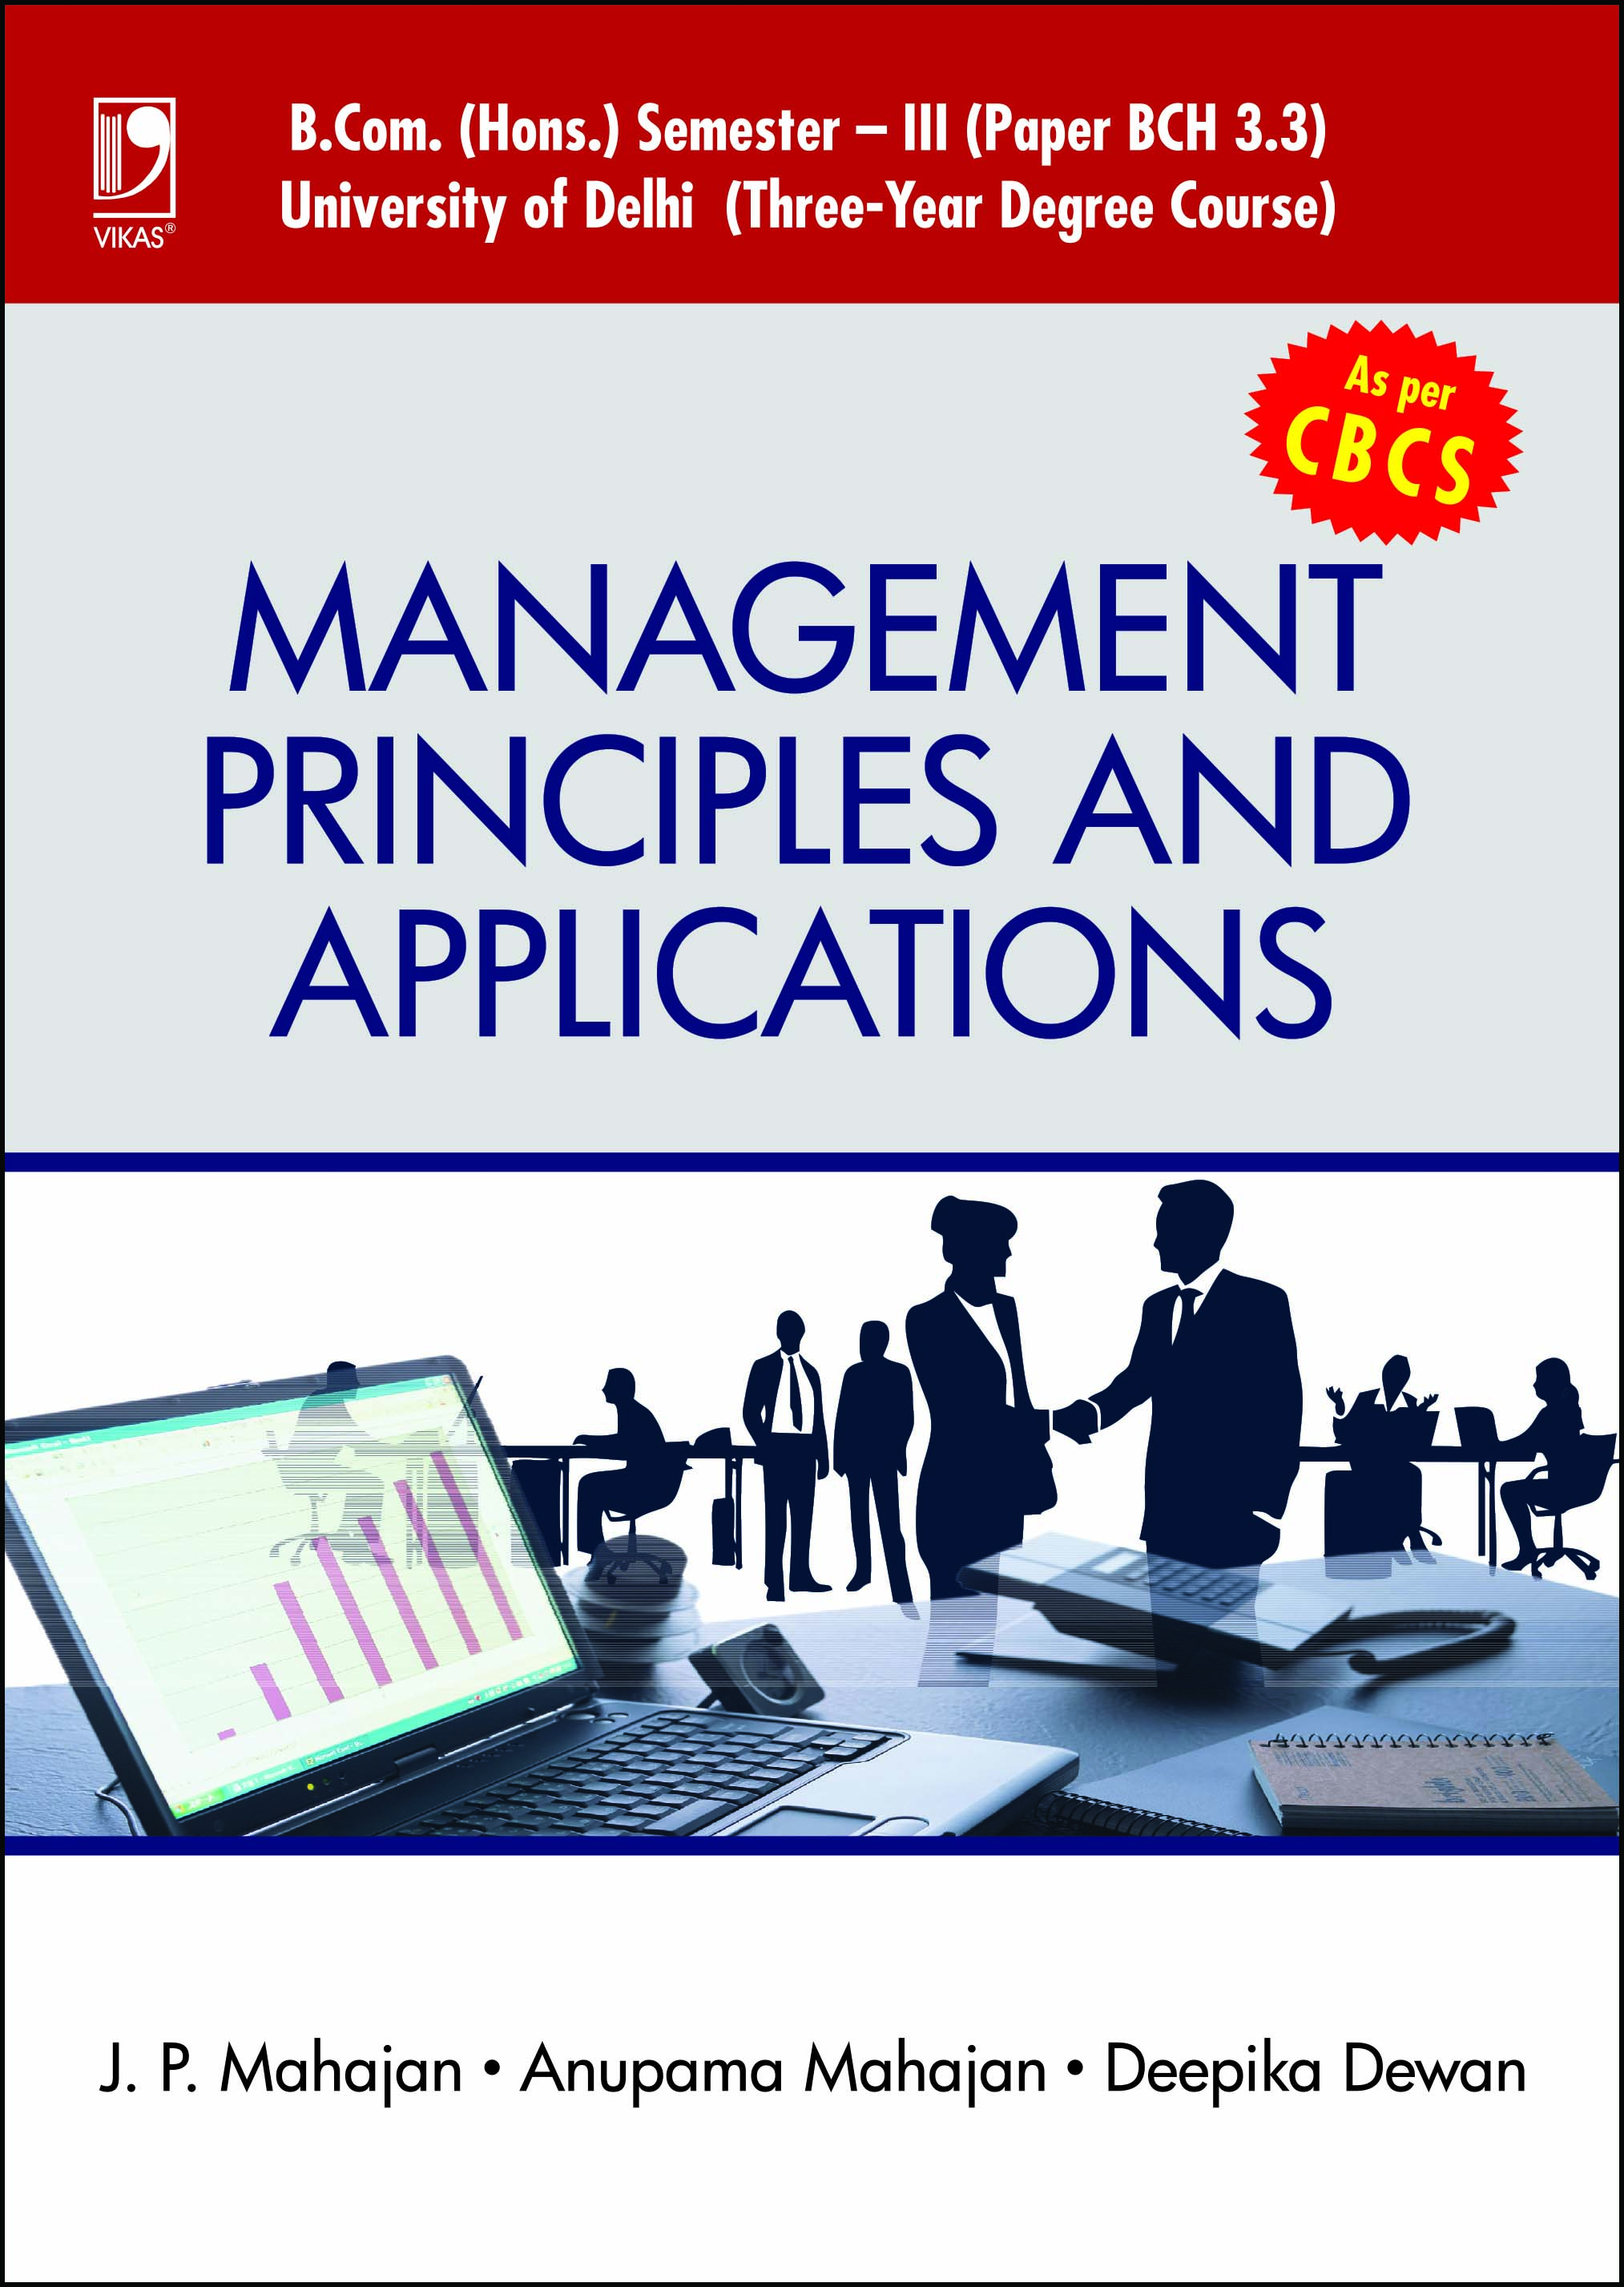 MANAGEMENT PRINCIPLES AND APPLICATIONS: (FOR B.COM, SEM.-3, DELHI UNIVERSITY, AS PER CBCS)